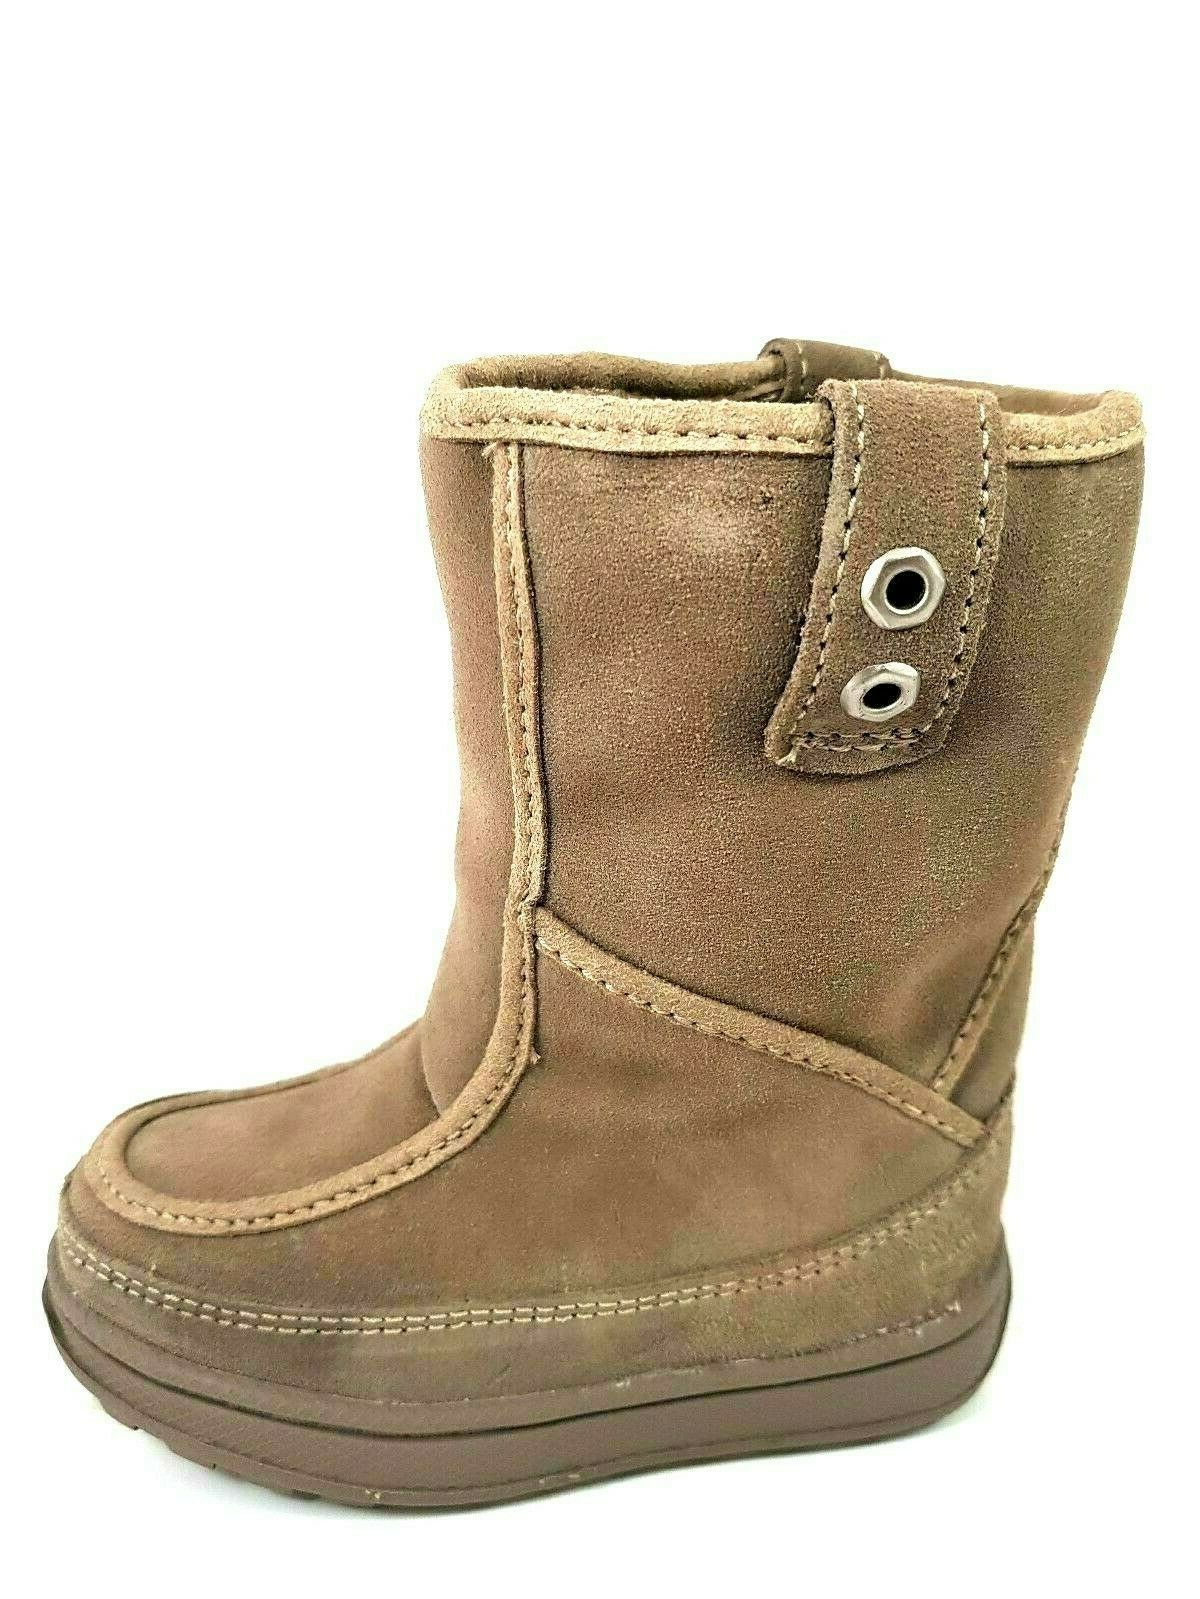 Timberland Girls Boots Winter 36776 M/M Mukluk Jewel Leather Tones Beige Sz 3 Y